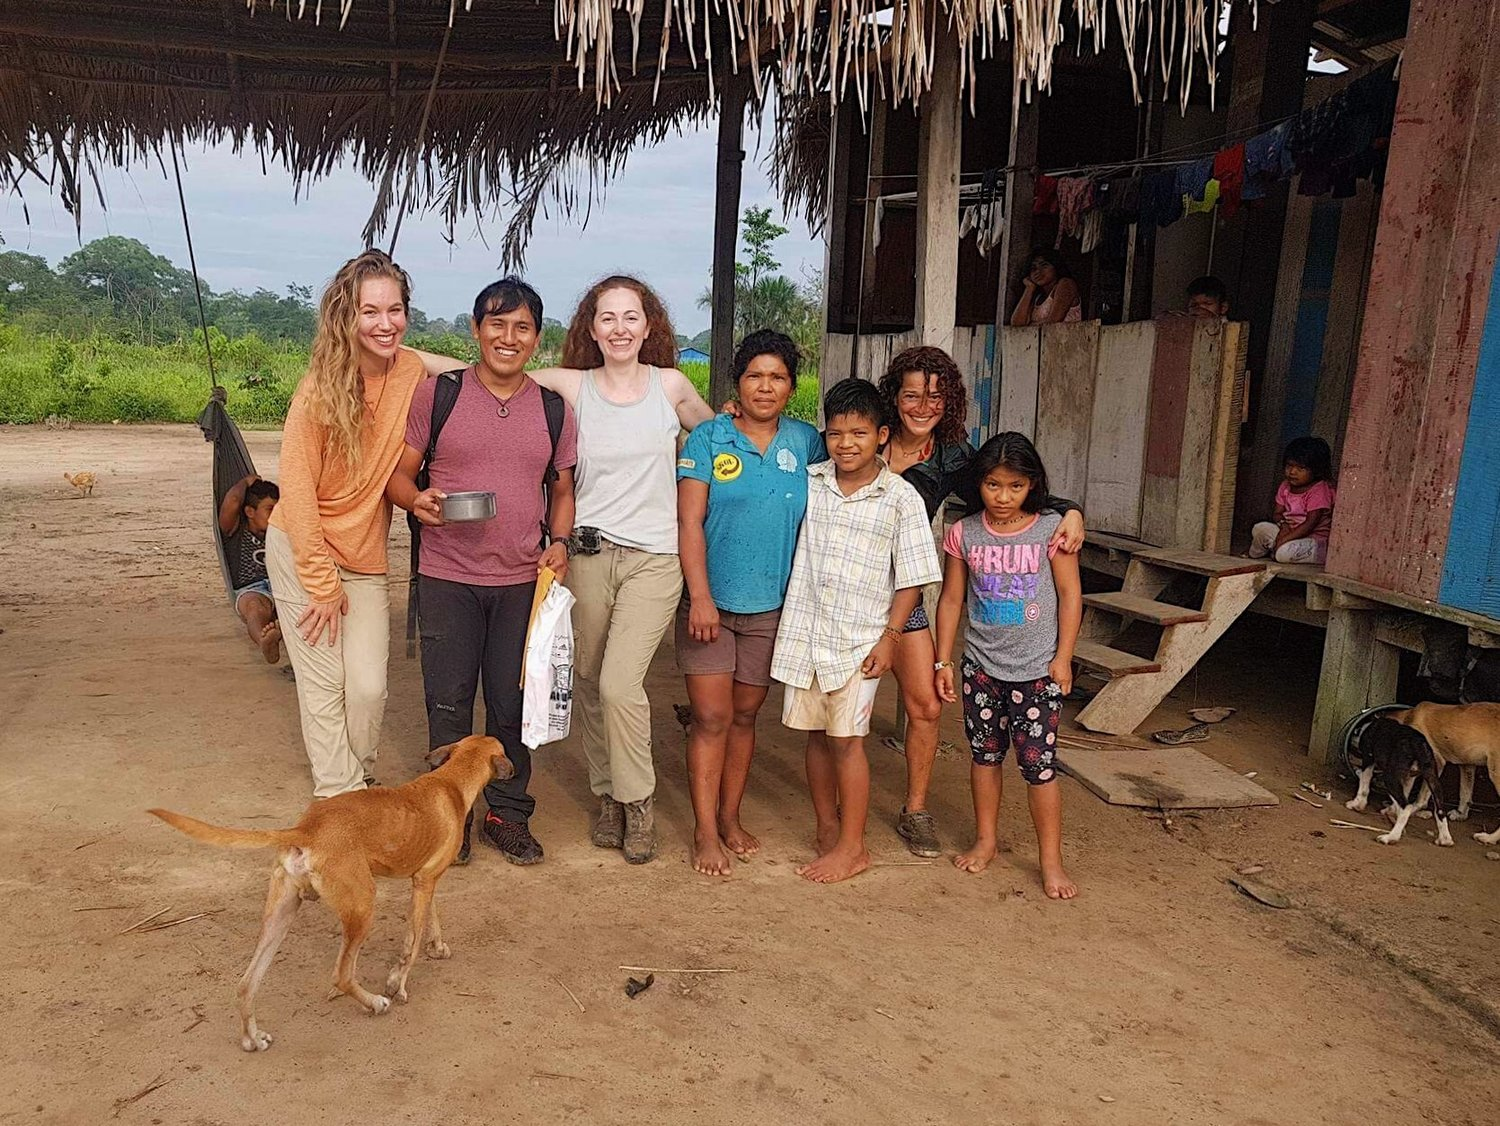 Pictured: Samantha Zwicker and Ronee Collins with members of the Lucerna community